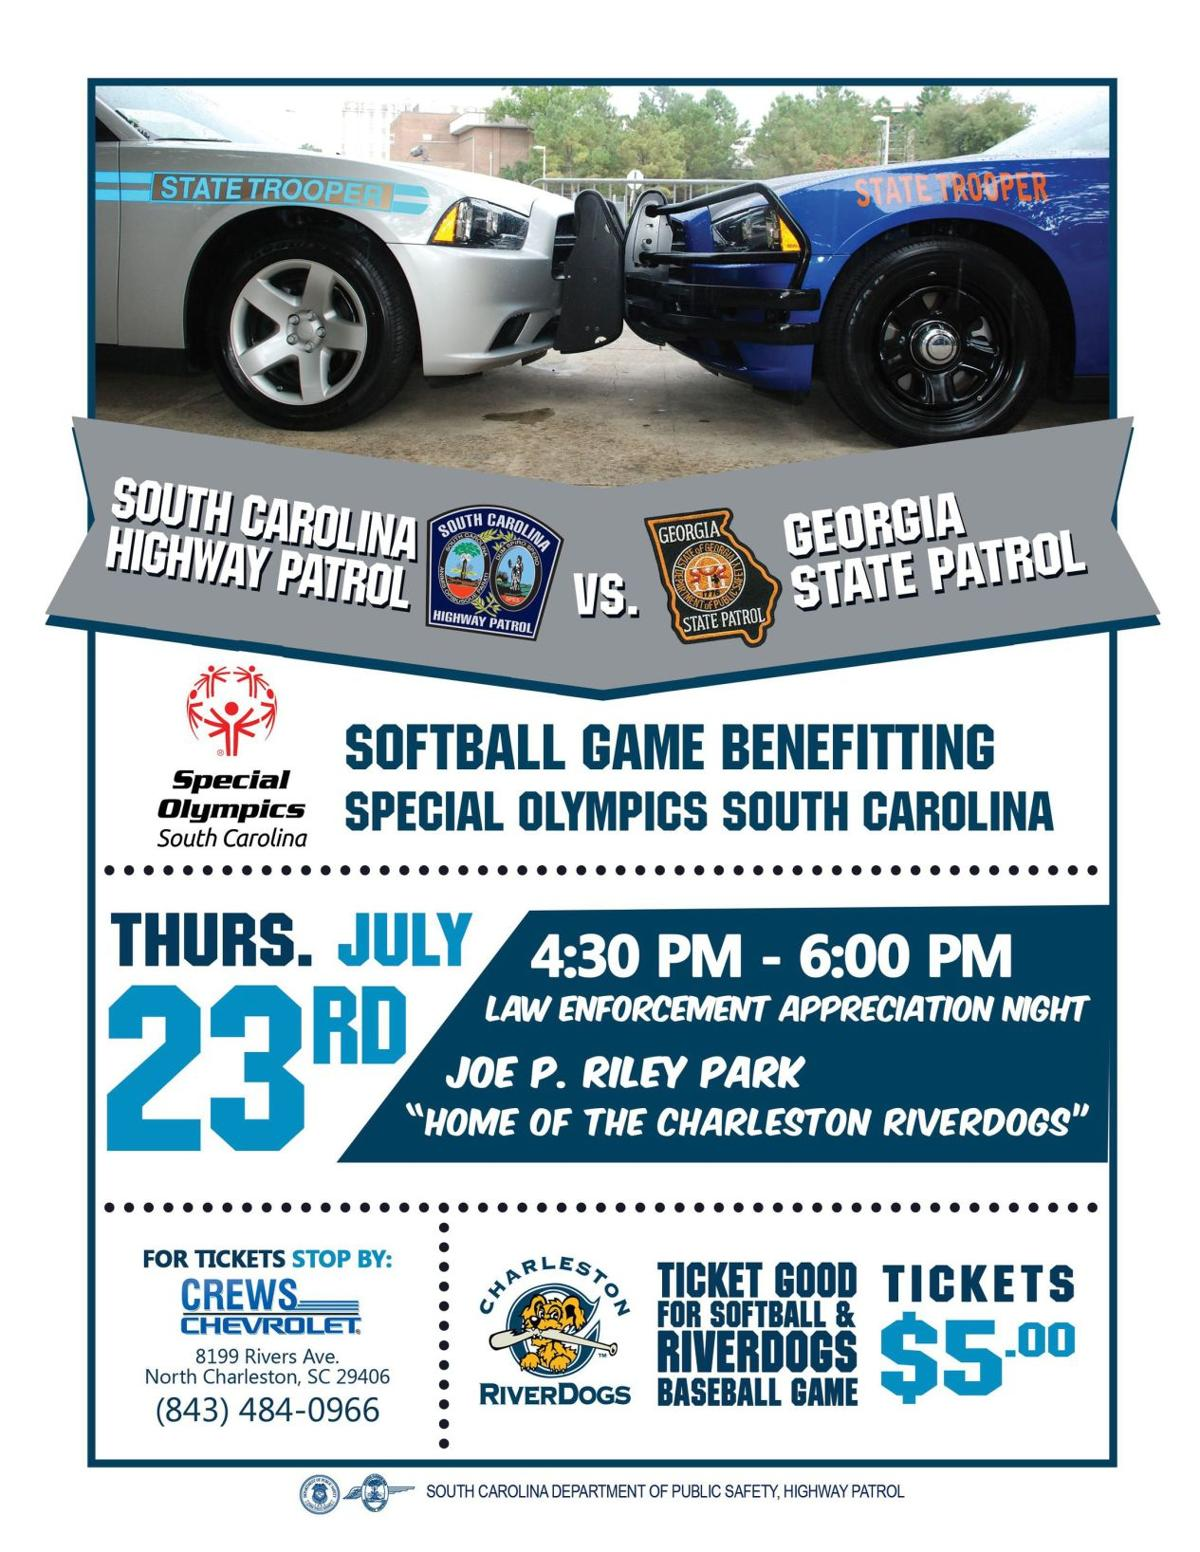 S.C., Georgia state troopers to play benefit softball game for Special Olympics